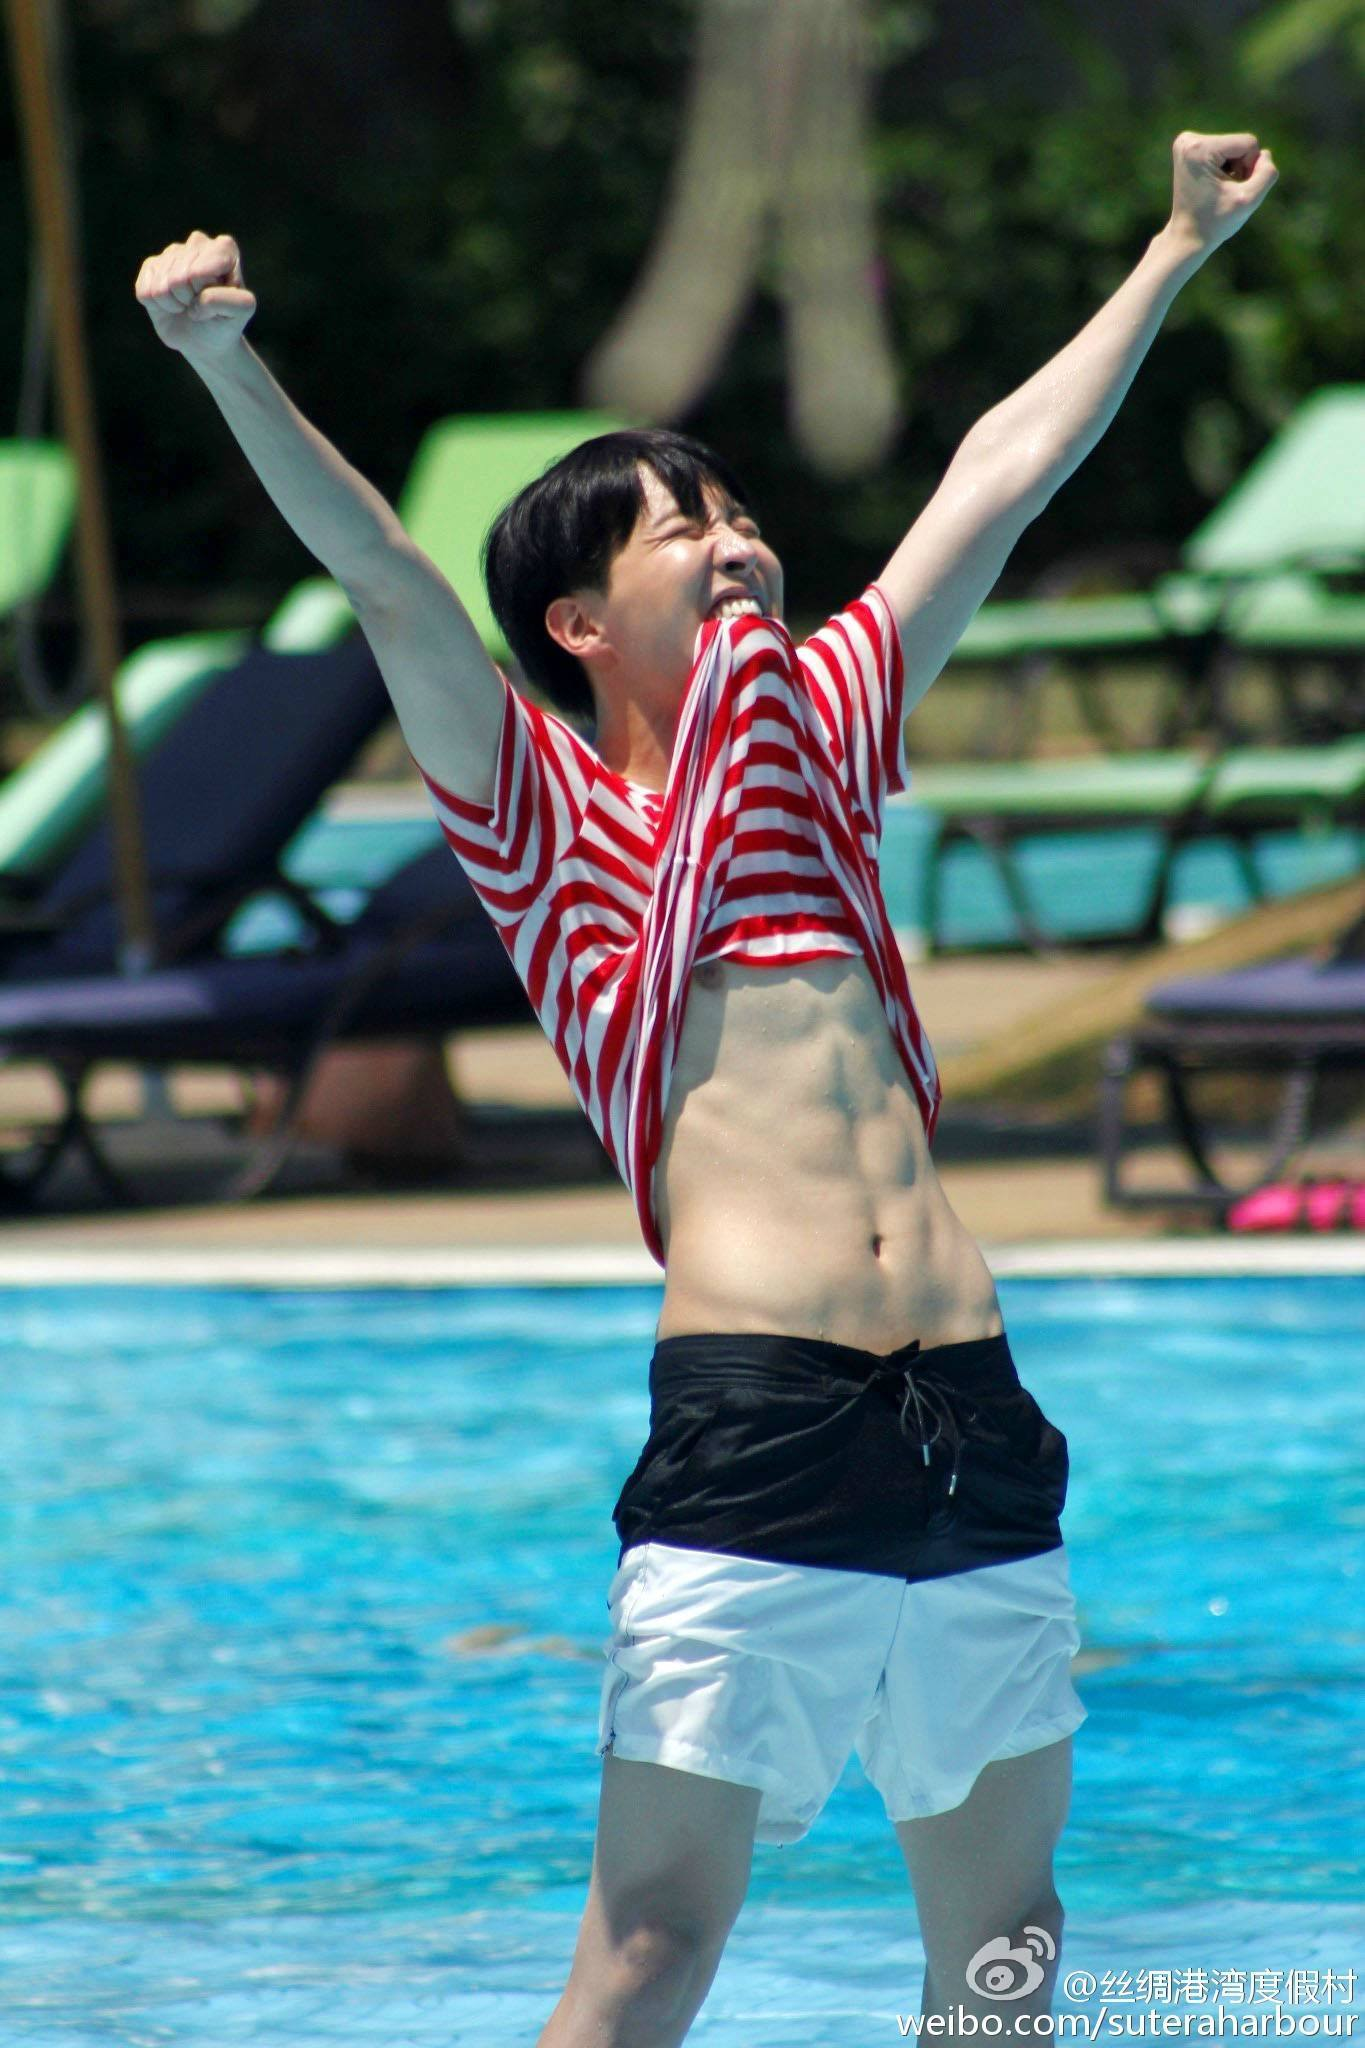 Fans lose their minds over J-Hope's wet shirt - Koreaboo